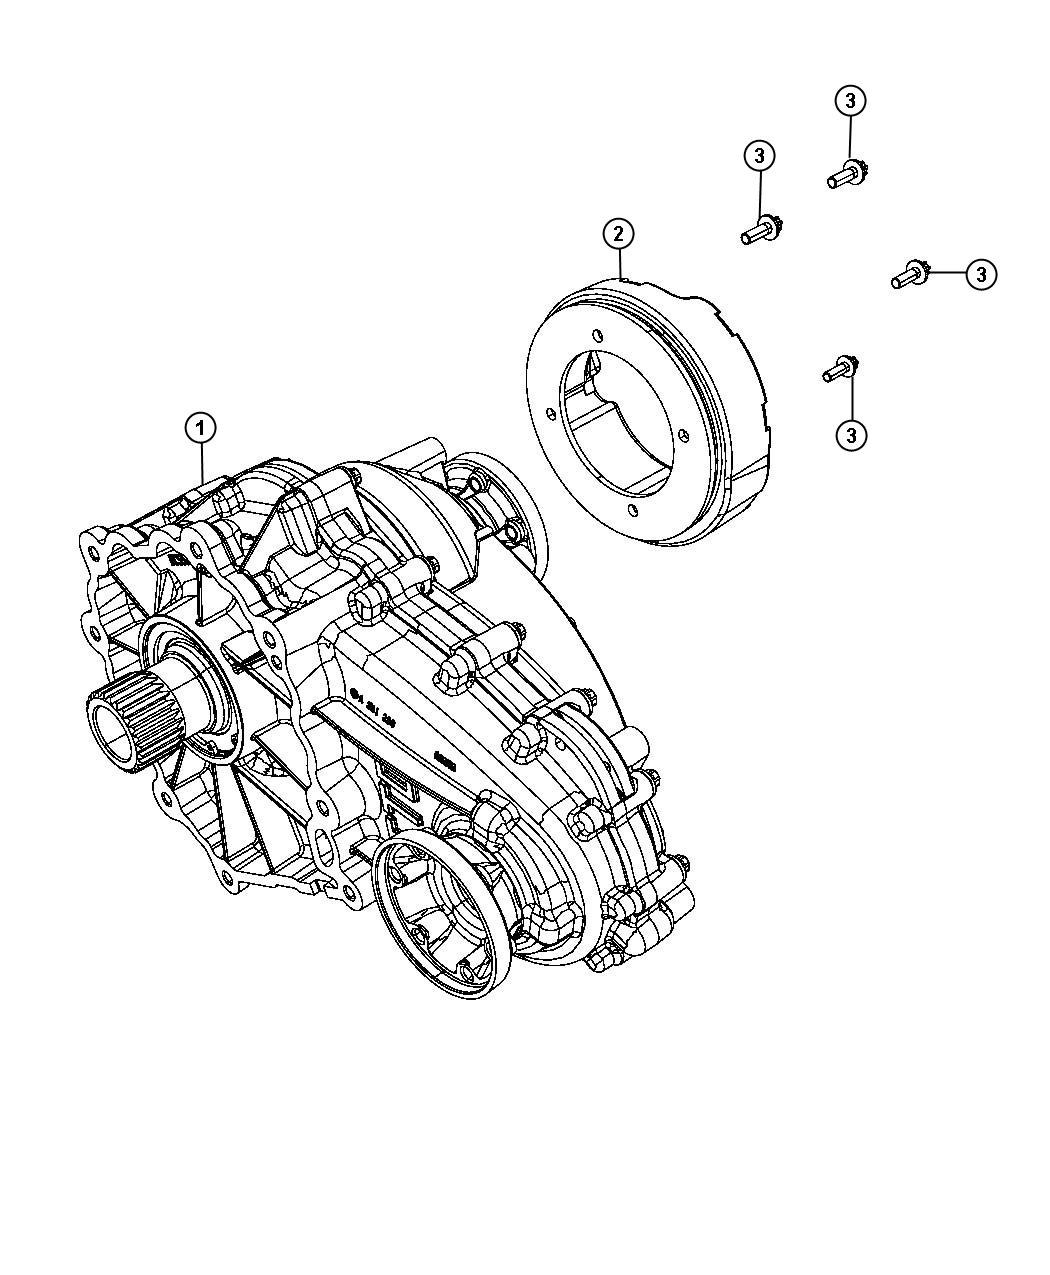 2011 Jeep Grand Cherokee Transfer case. Dhy, assembly, itc